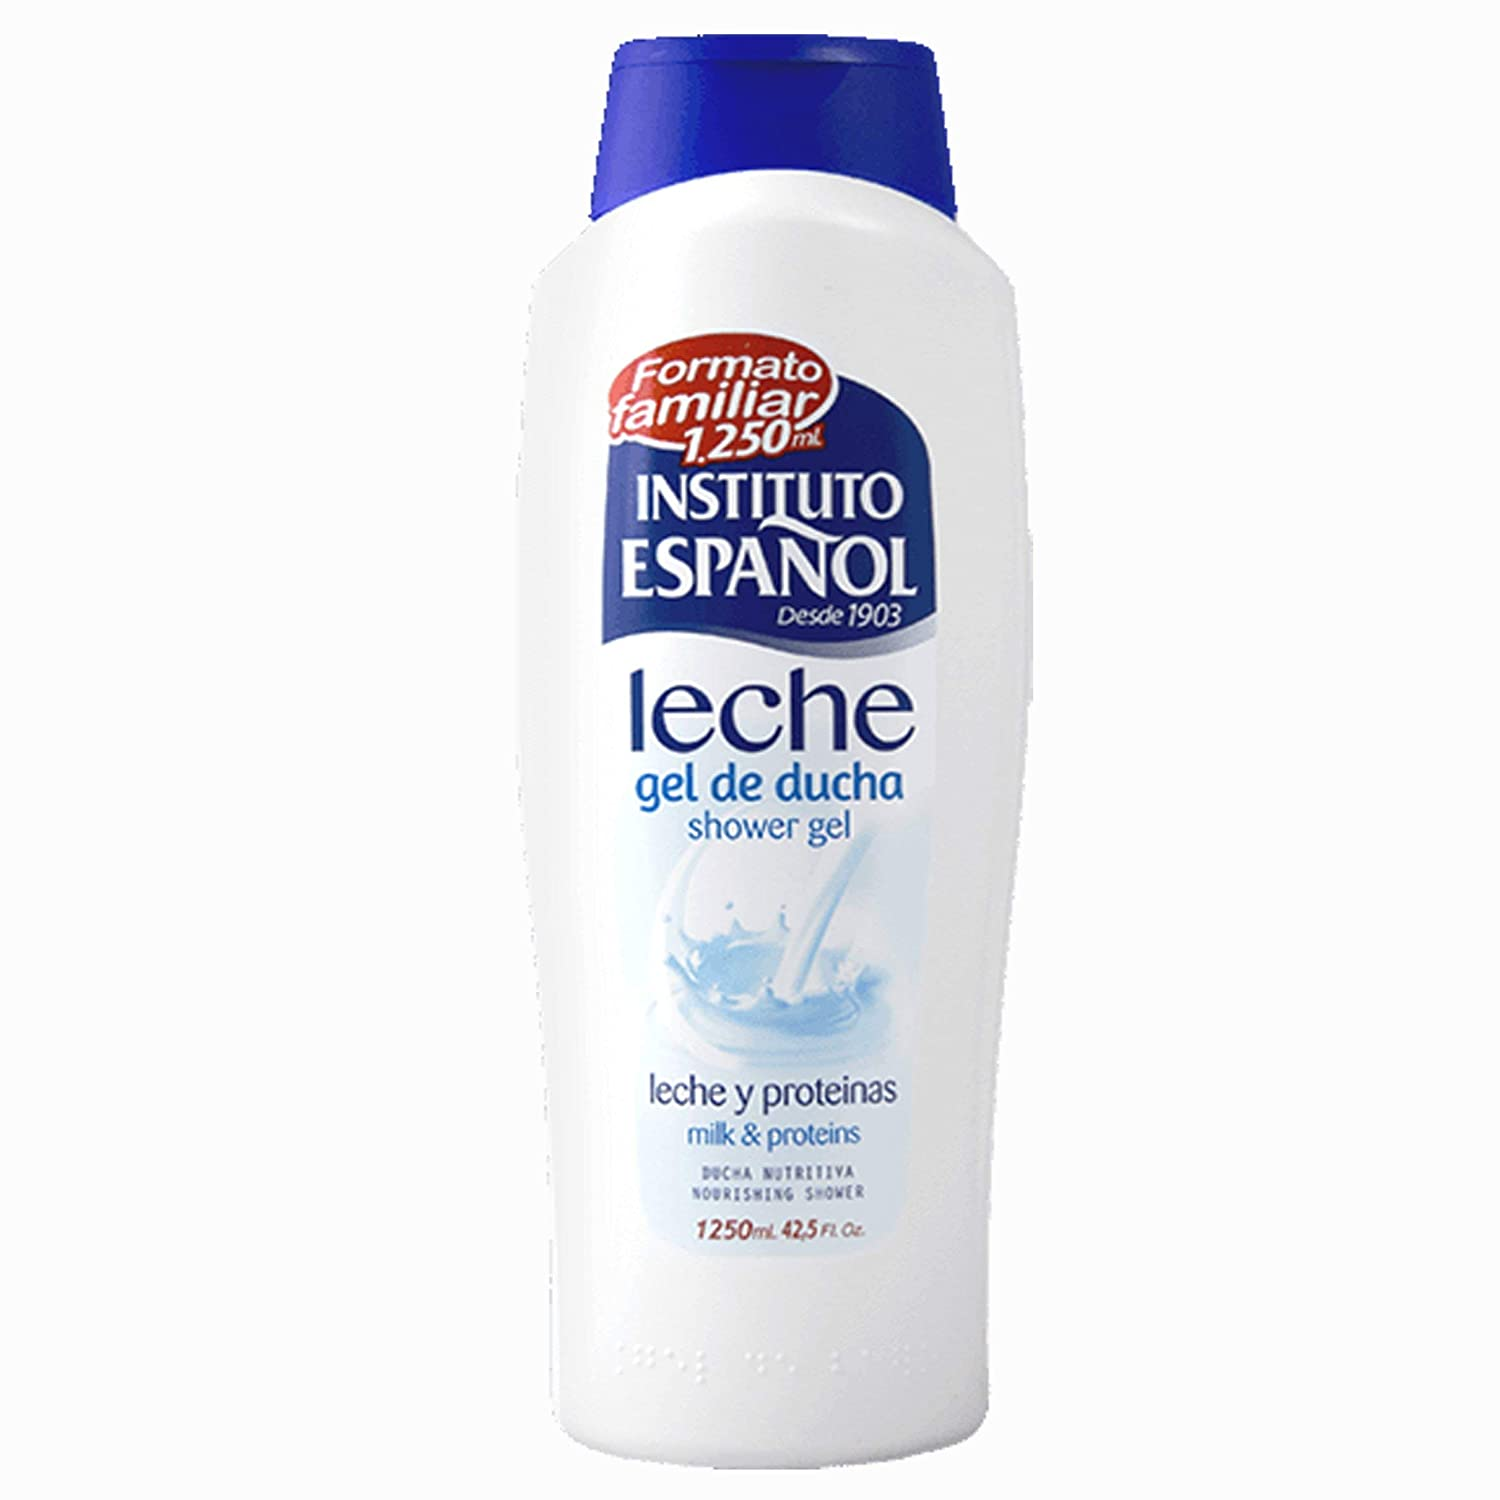 Instituto Español - Leche Y Proteinas - Gel De Ducha, 1250 ml: Amazon.es: Belleza